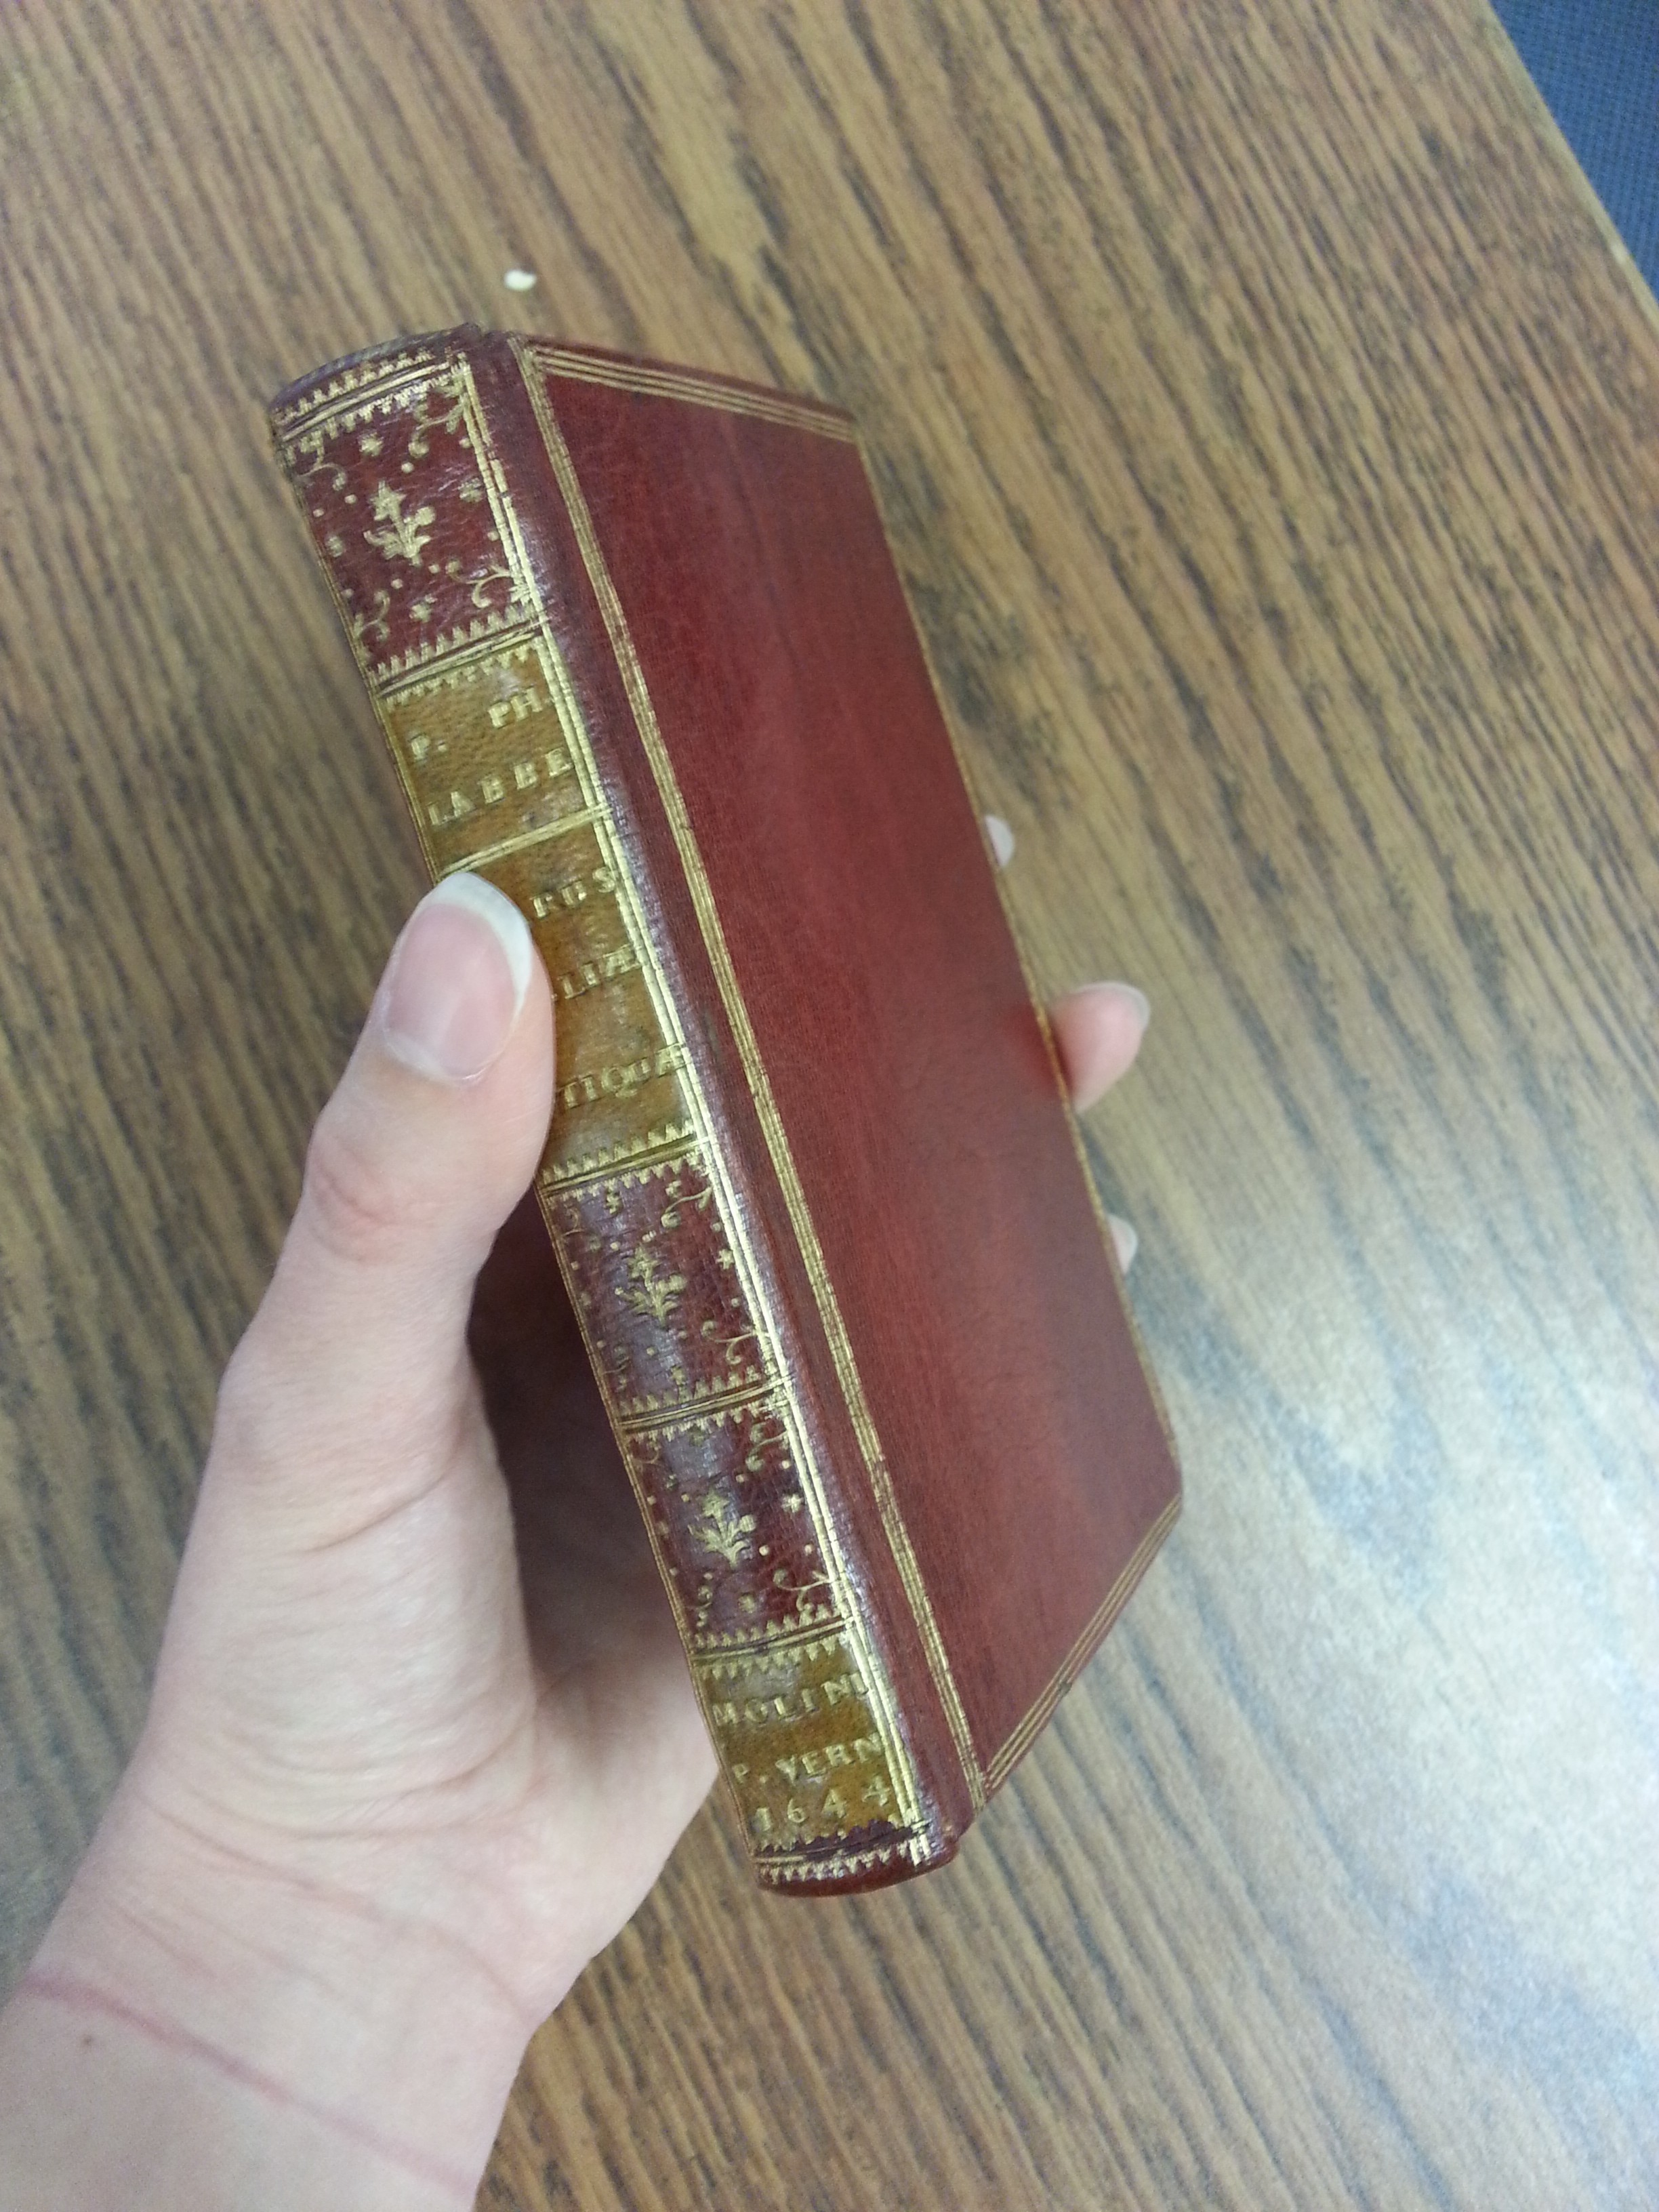 The Gazetteer book binding